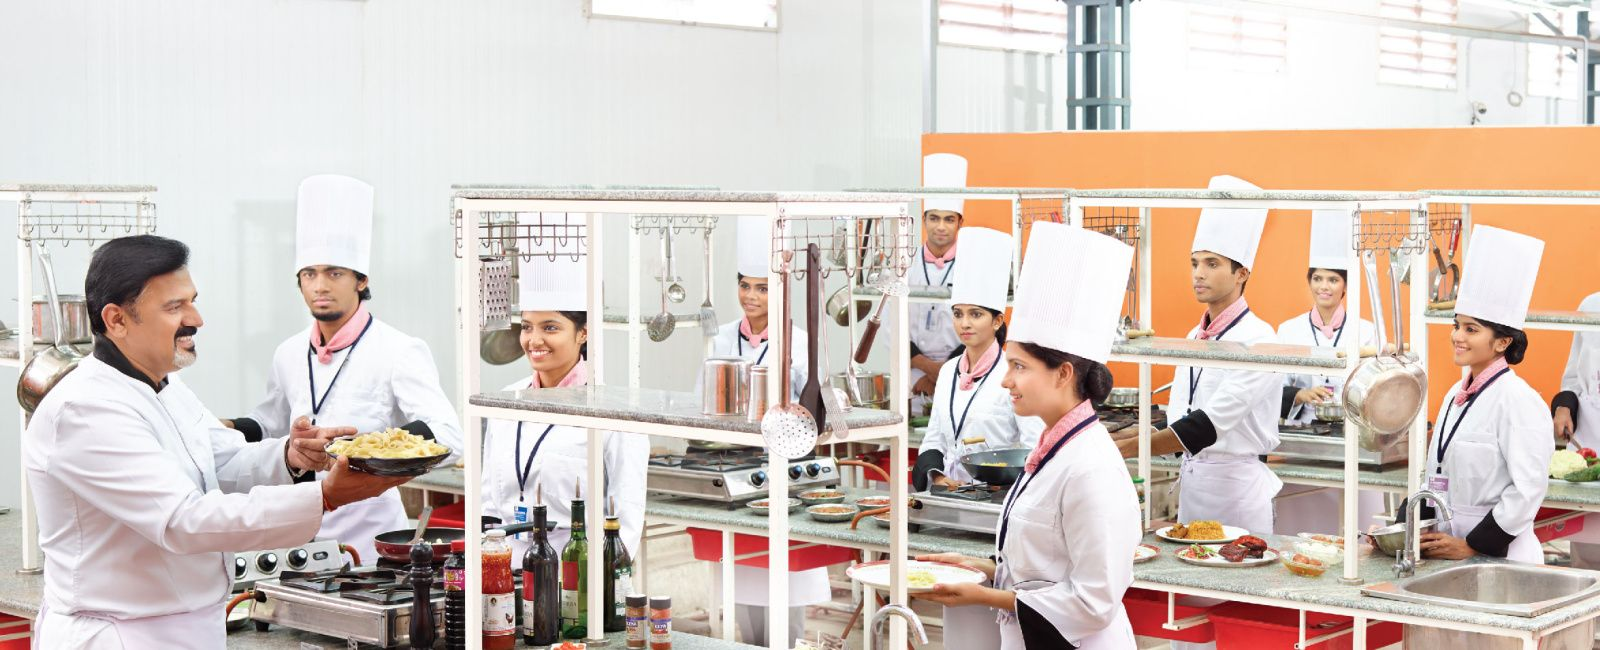 Hotel Management Industry Or Hospitality Industry In India Is At